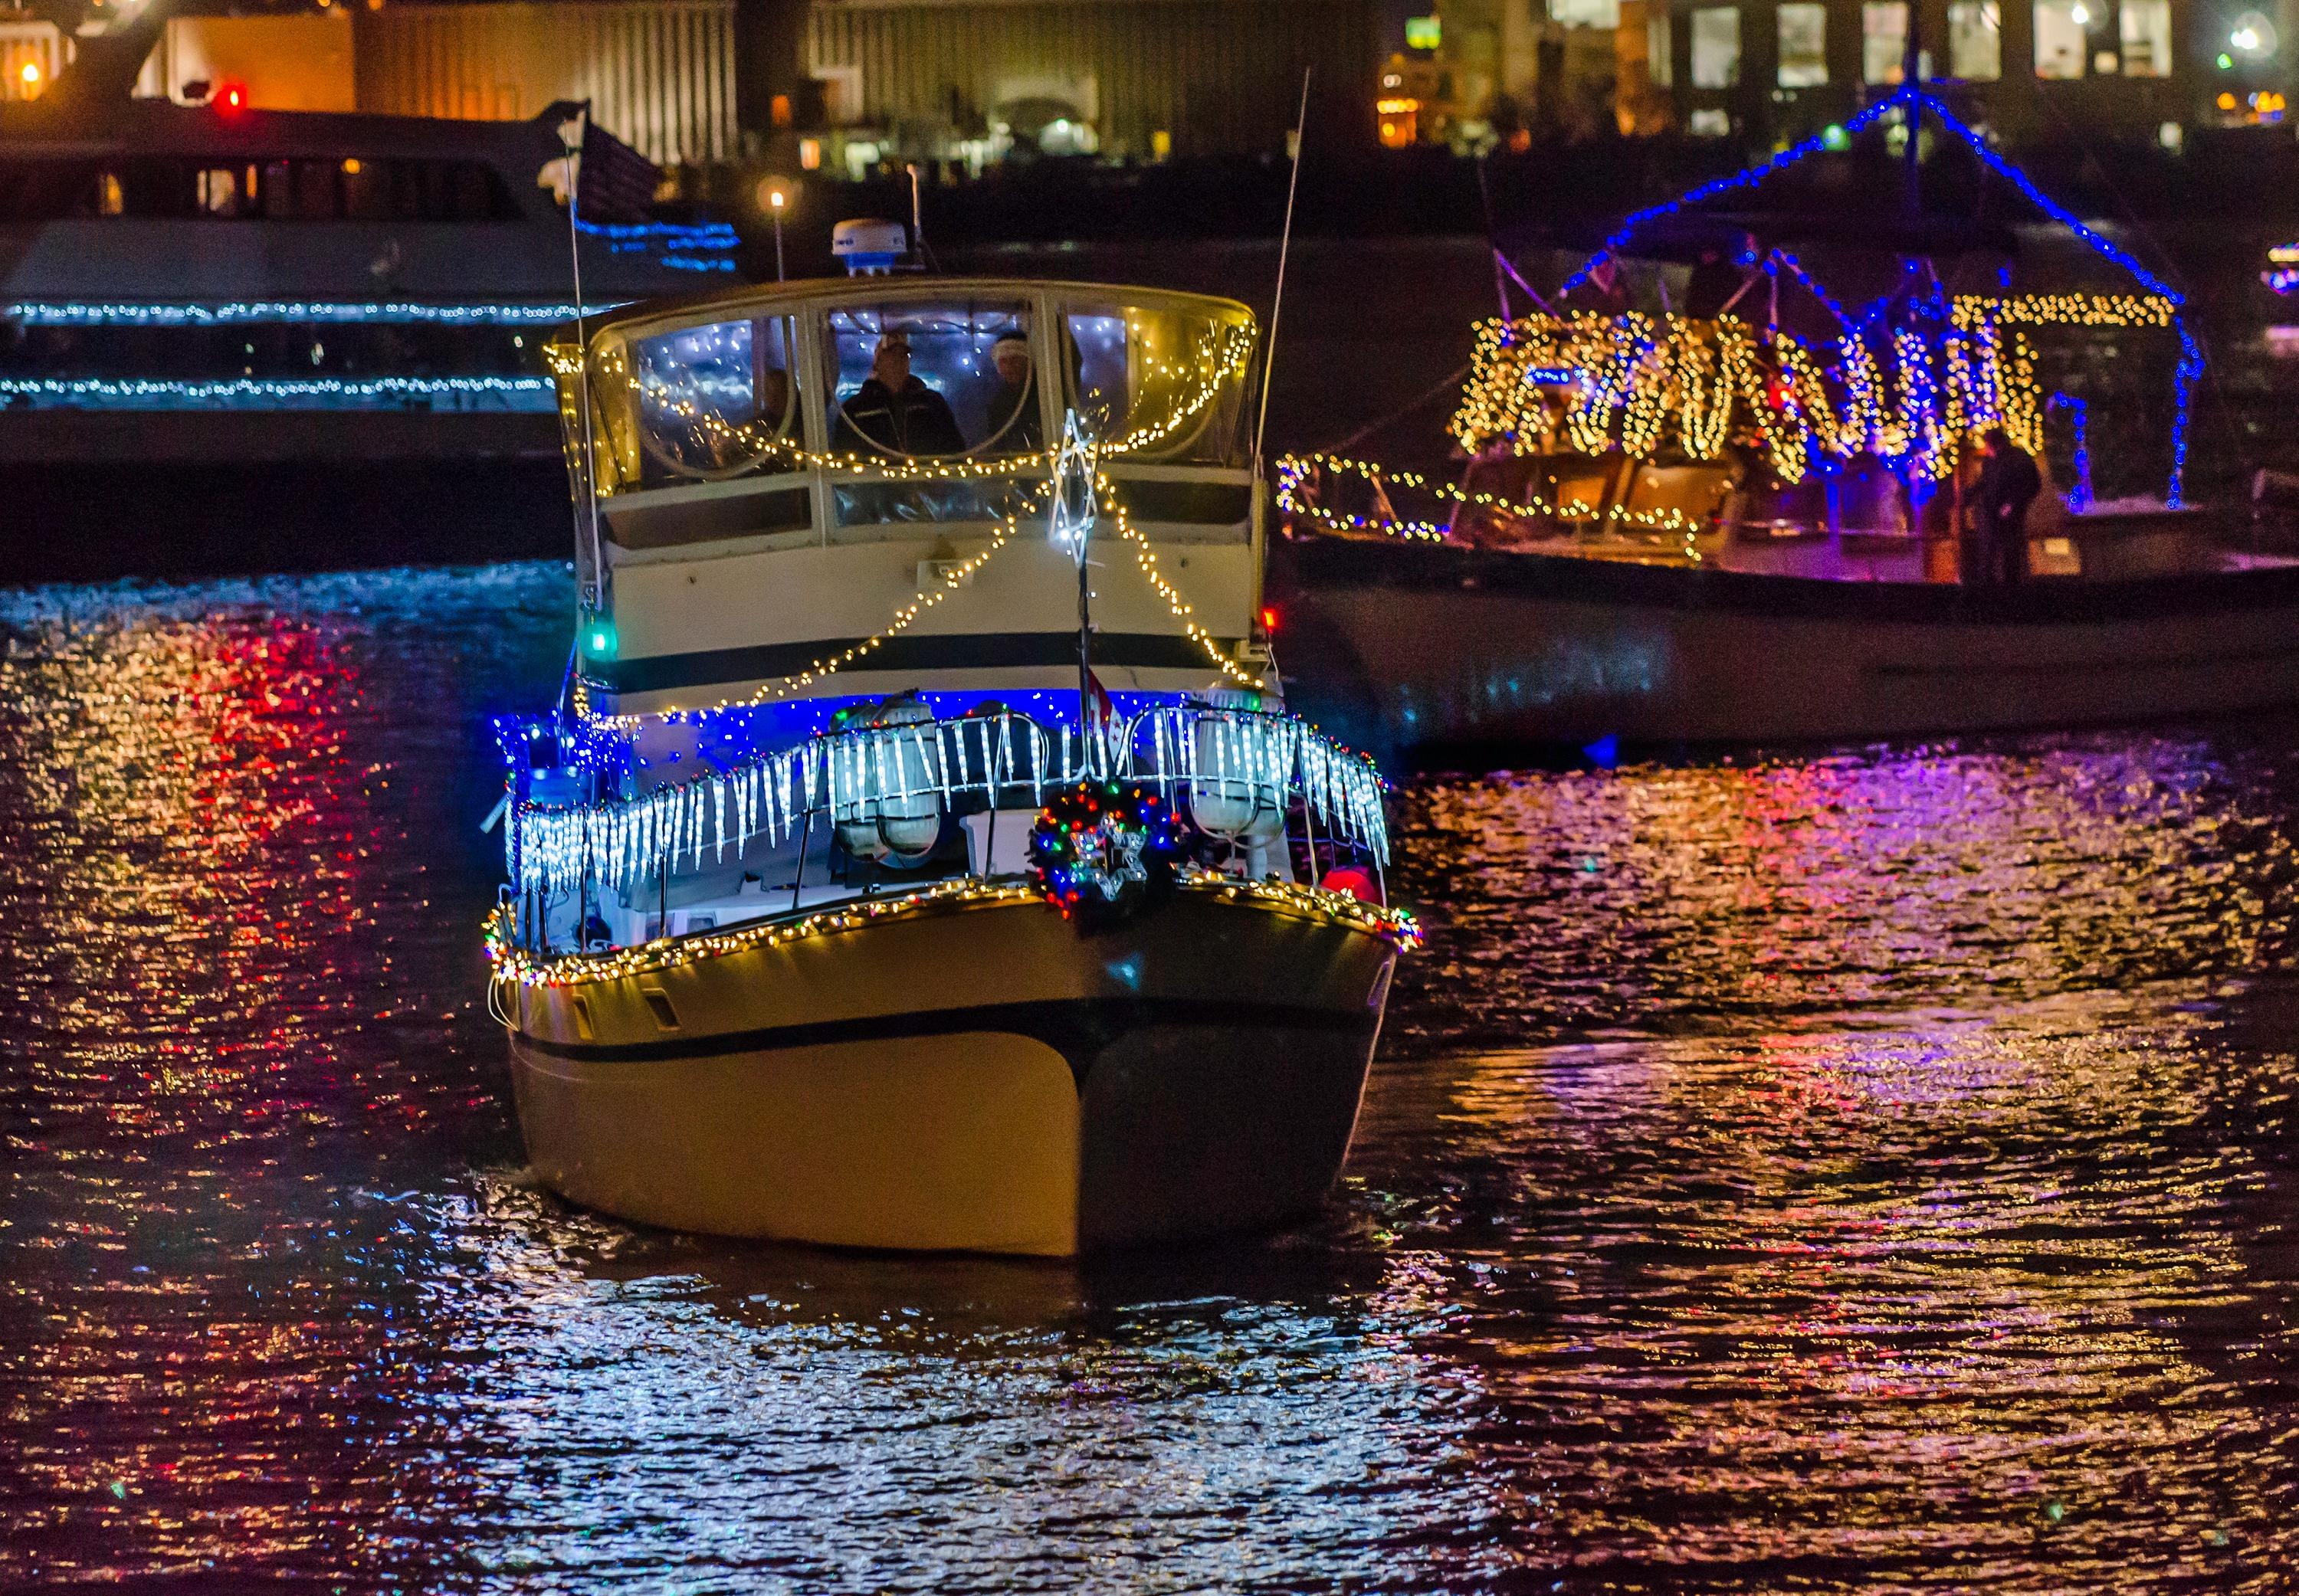 18th Annual Alexandria Holiday Boat Parade of Lights (R. Kennedy for Visit Alexandria)<p></p>